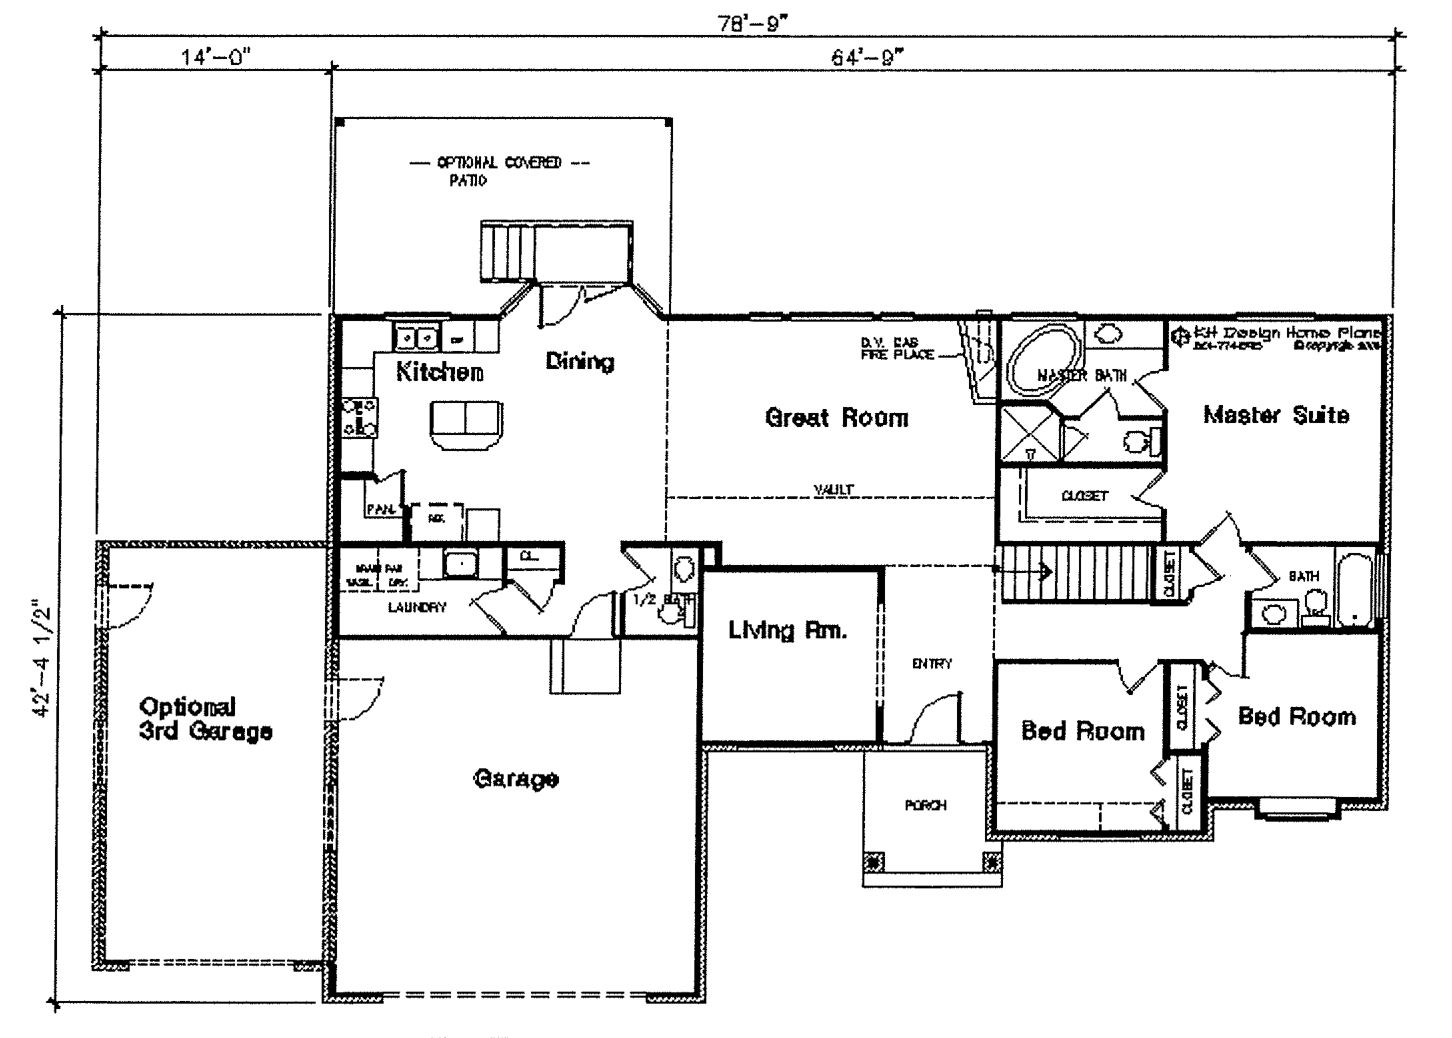 Mather floor plan